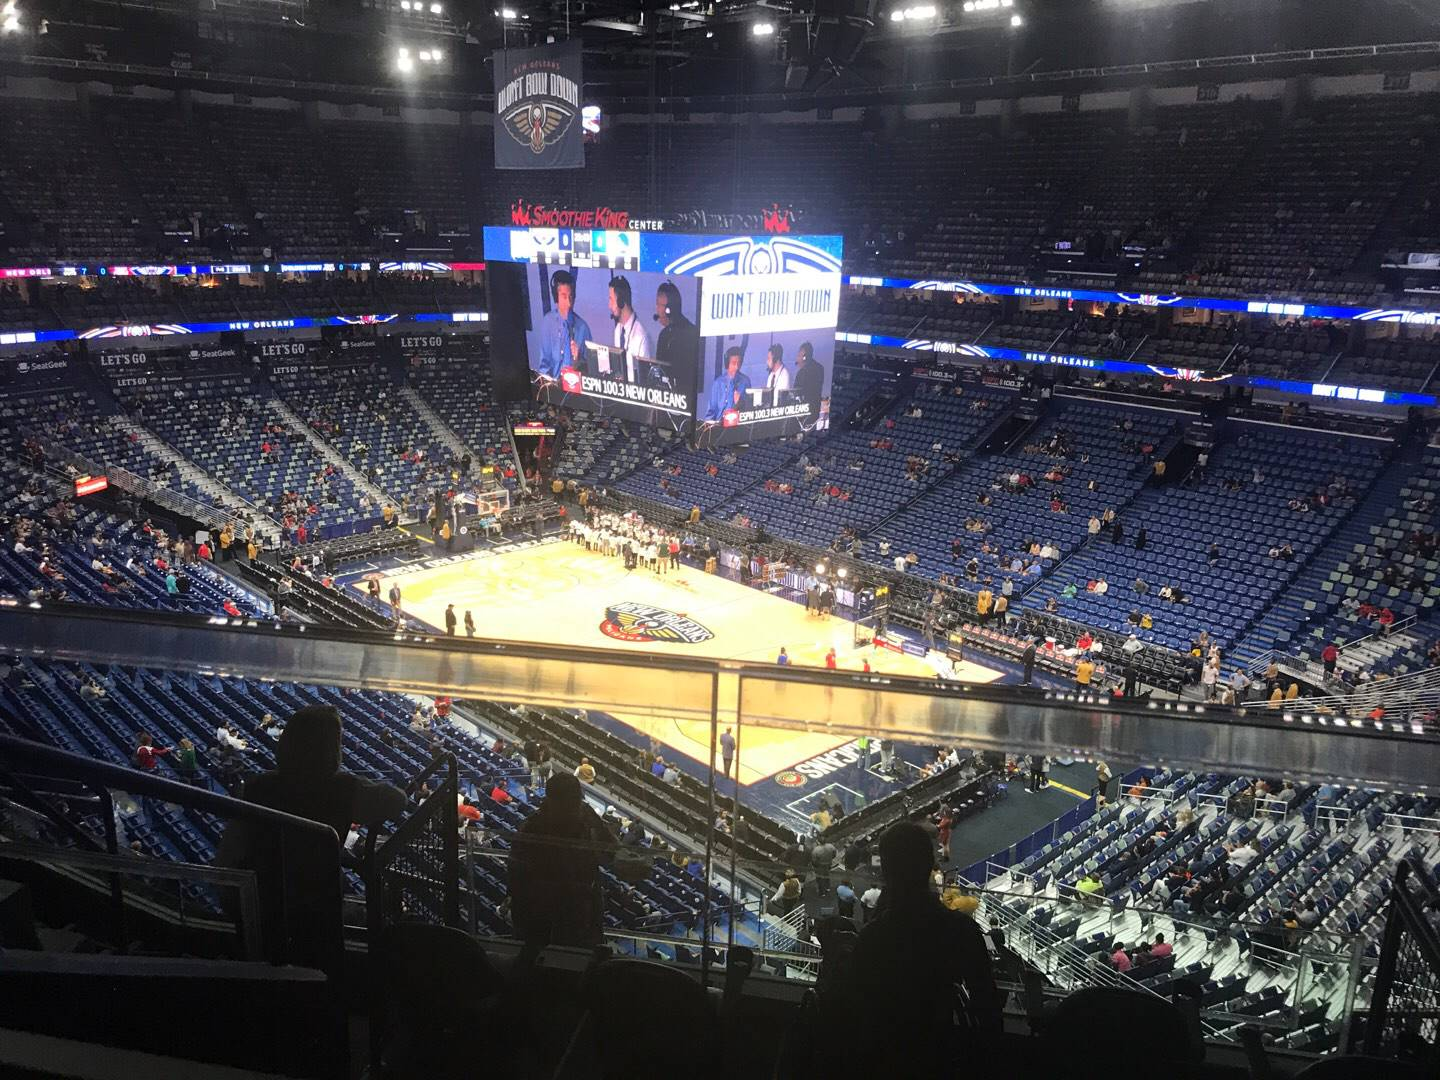 Smoothie King Center Section 328 Row 7 Seat 9